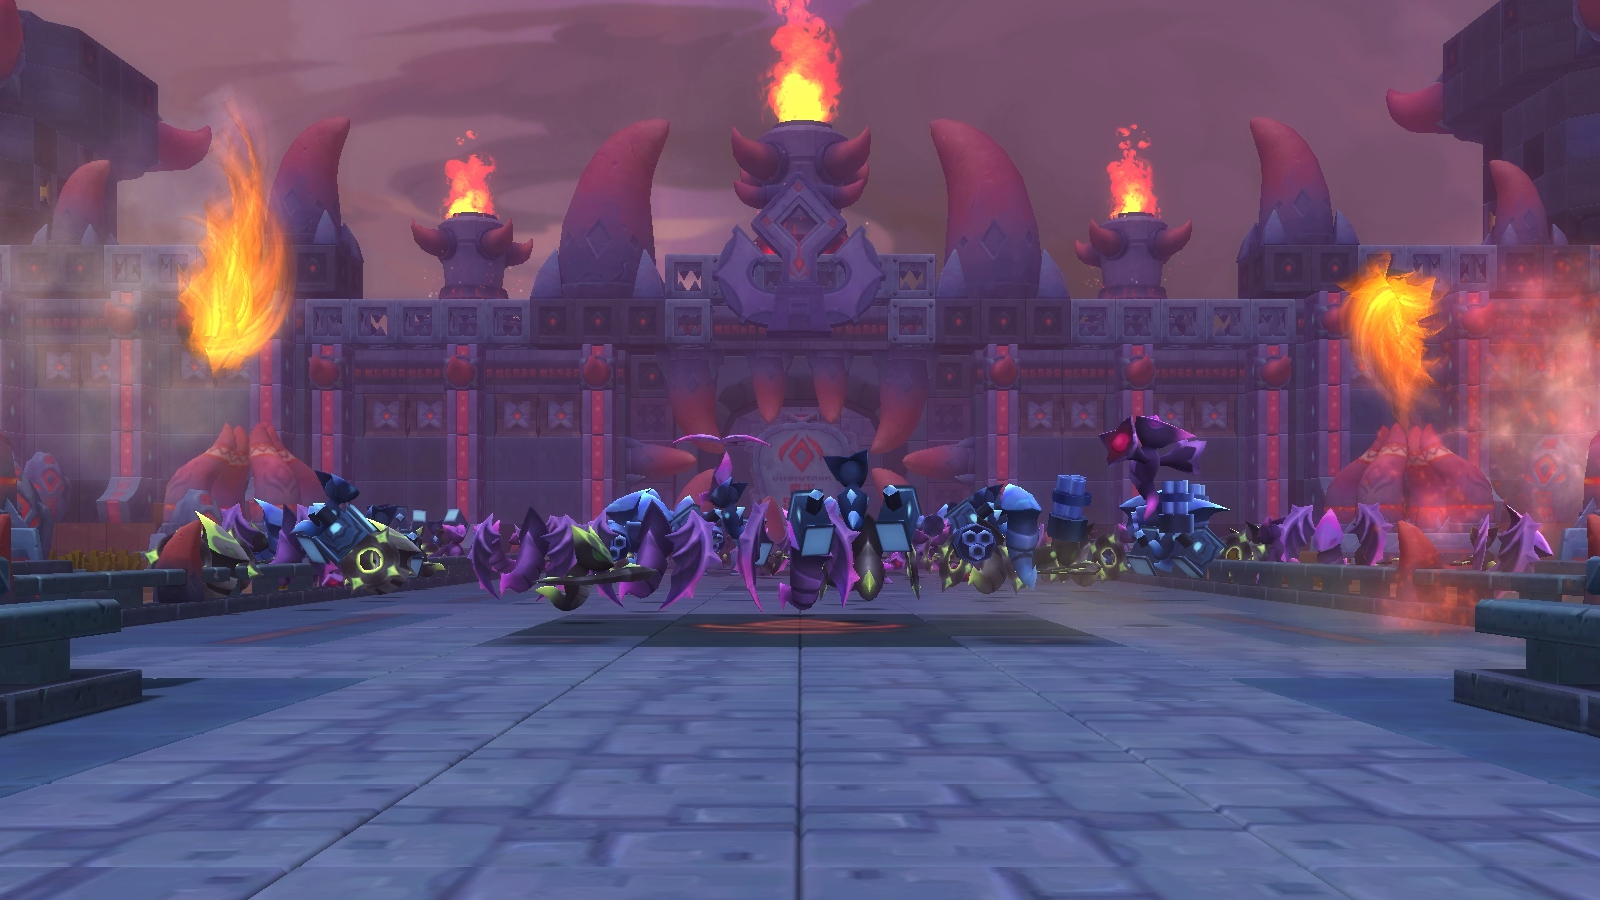 [MapleStory 2] Army at the Gates